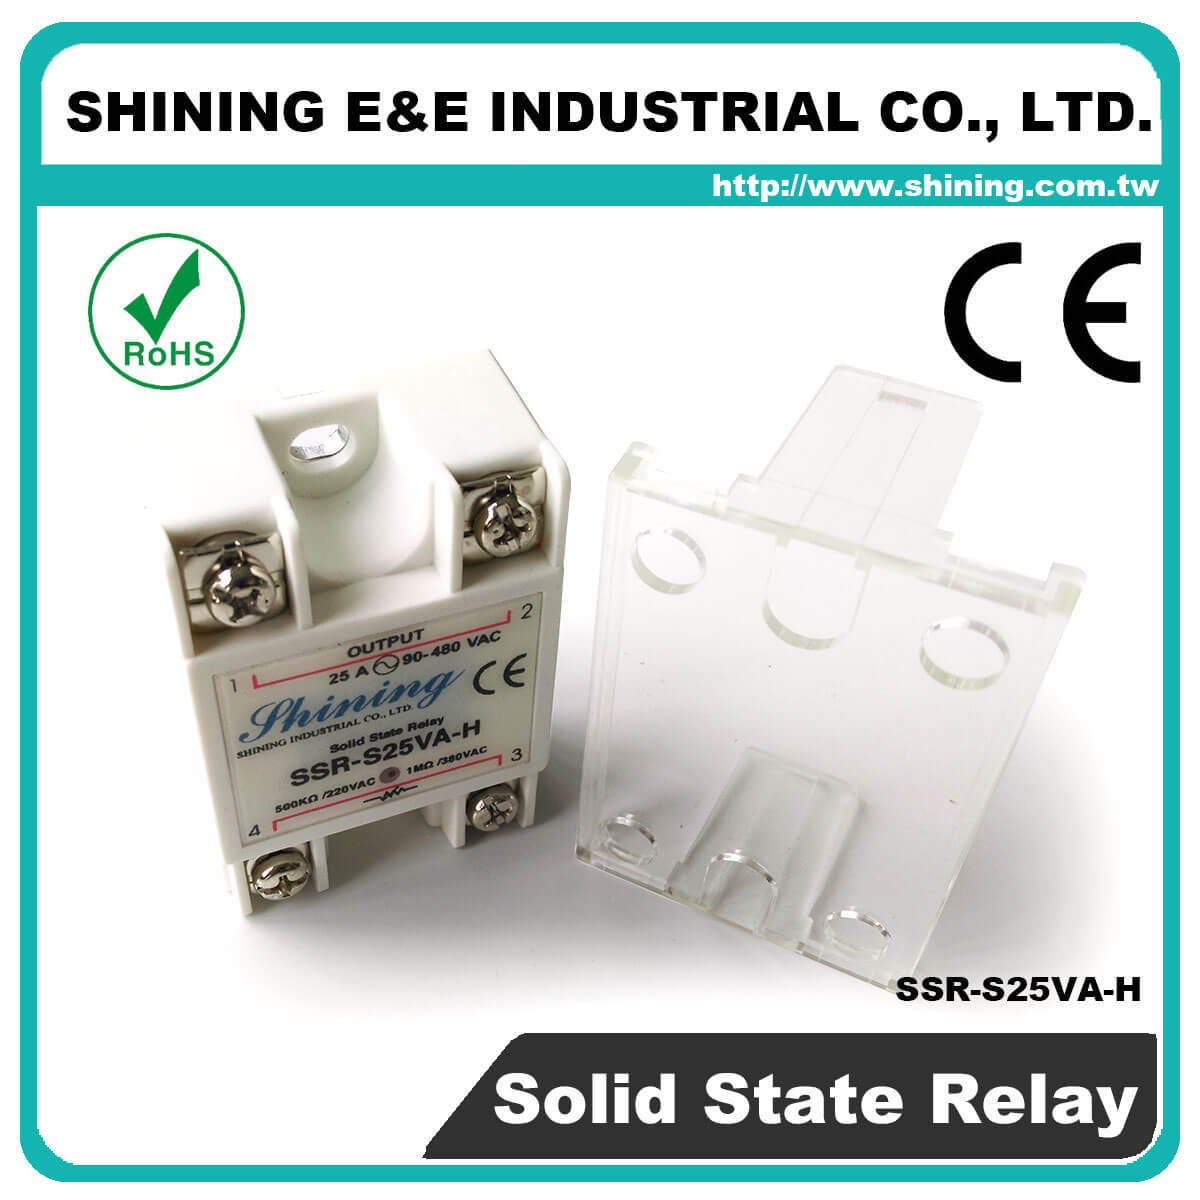 Ssr Sxxva Series Vrtoac Single Phase Solid State Relay The Professional S25va H Vr To Ac 25a 480vac